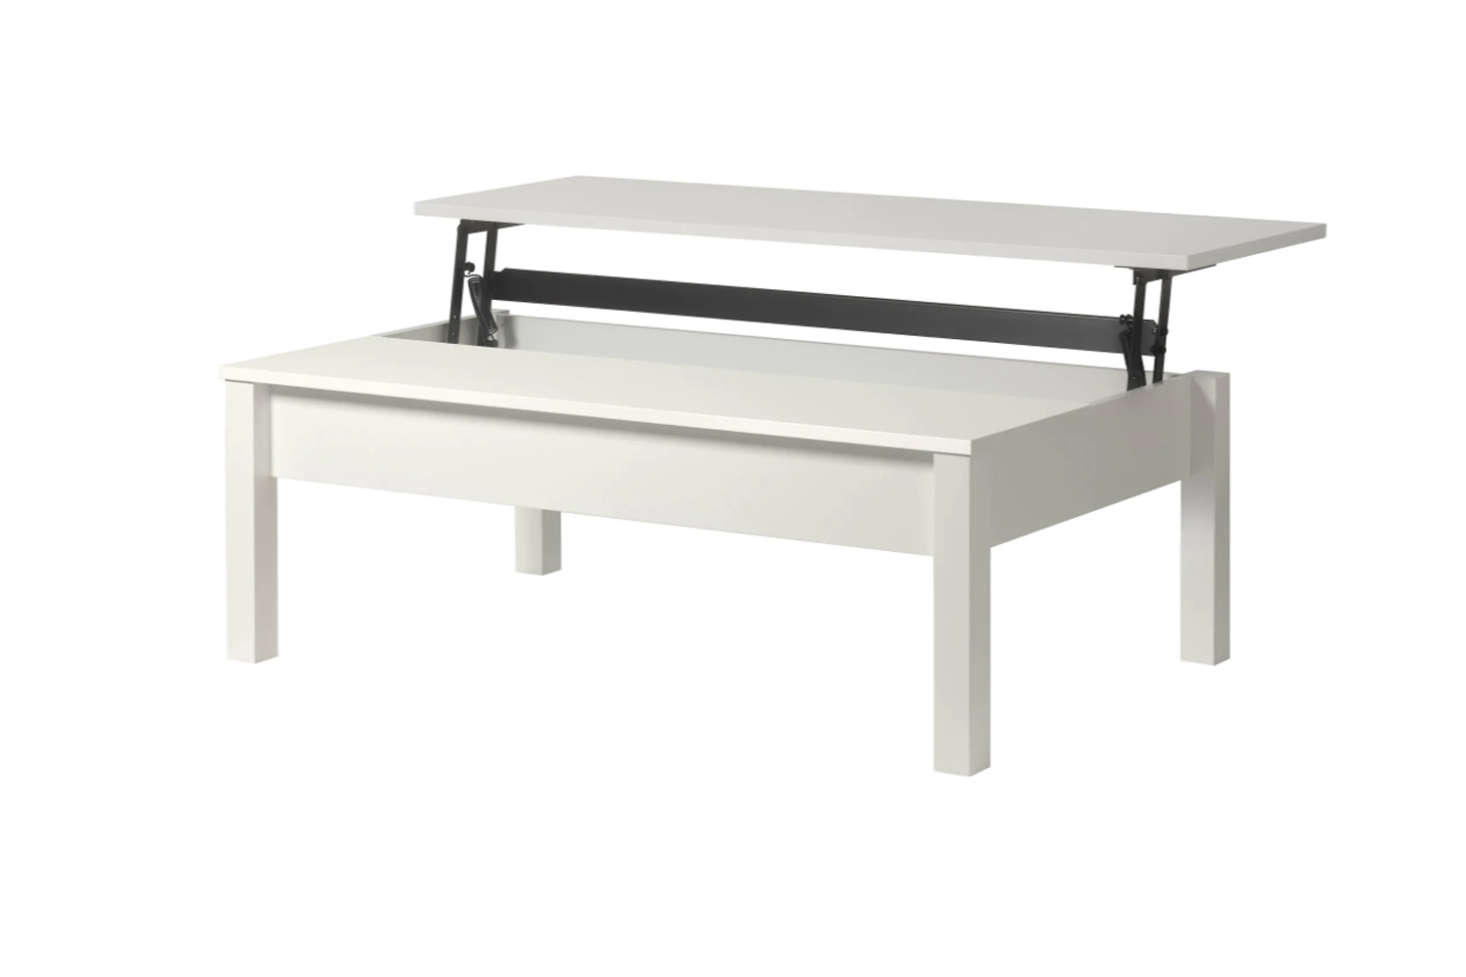 The IKEA Trulstorp Coffee Table in white is $99.